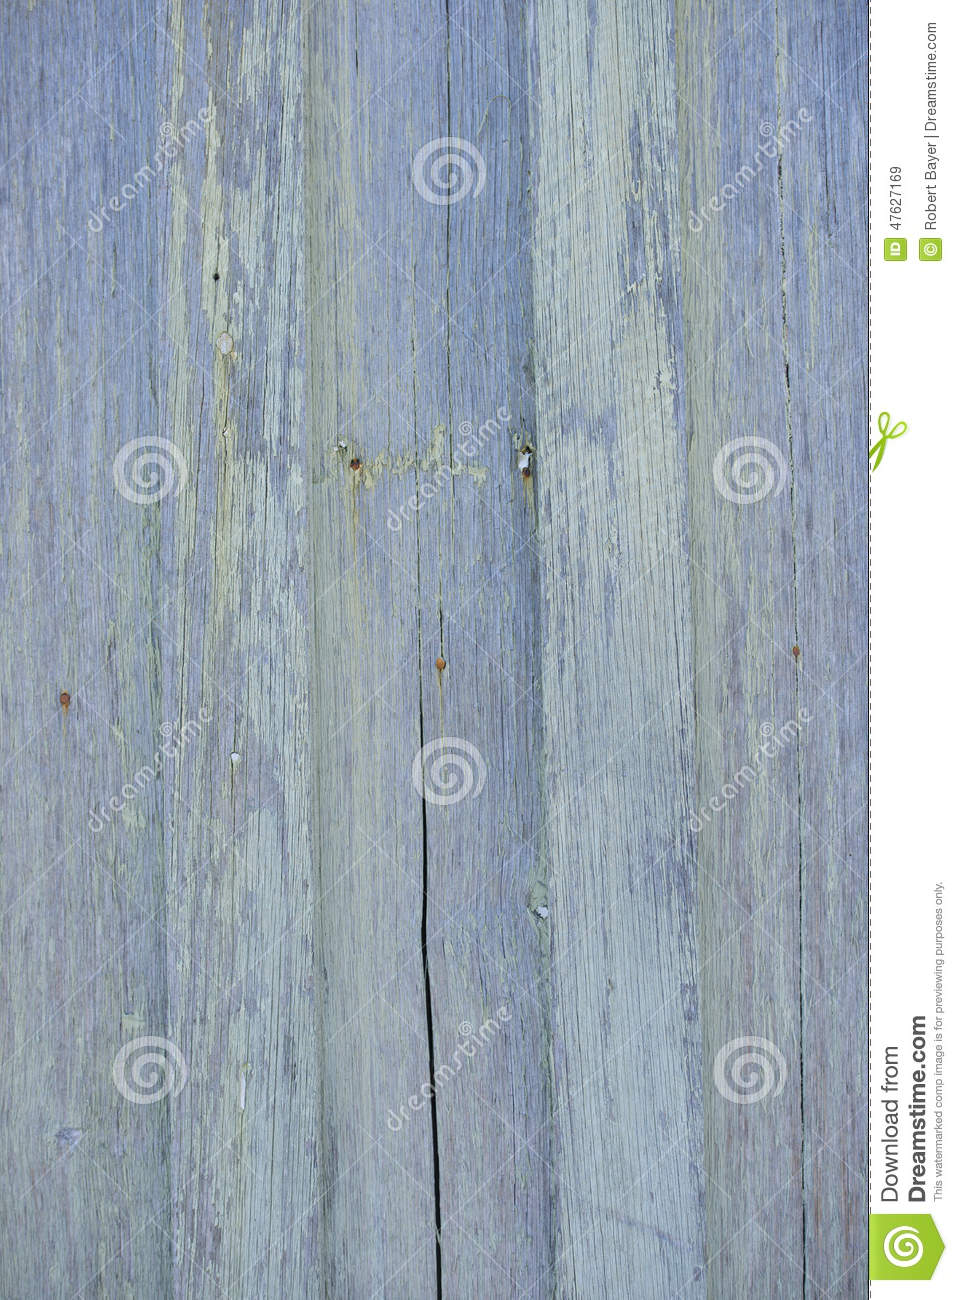 Timber Wall With Wood Grain Texture